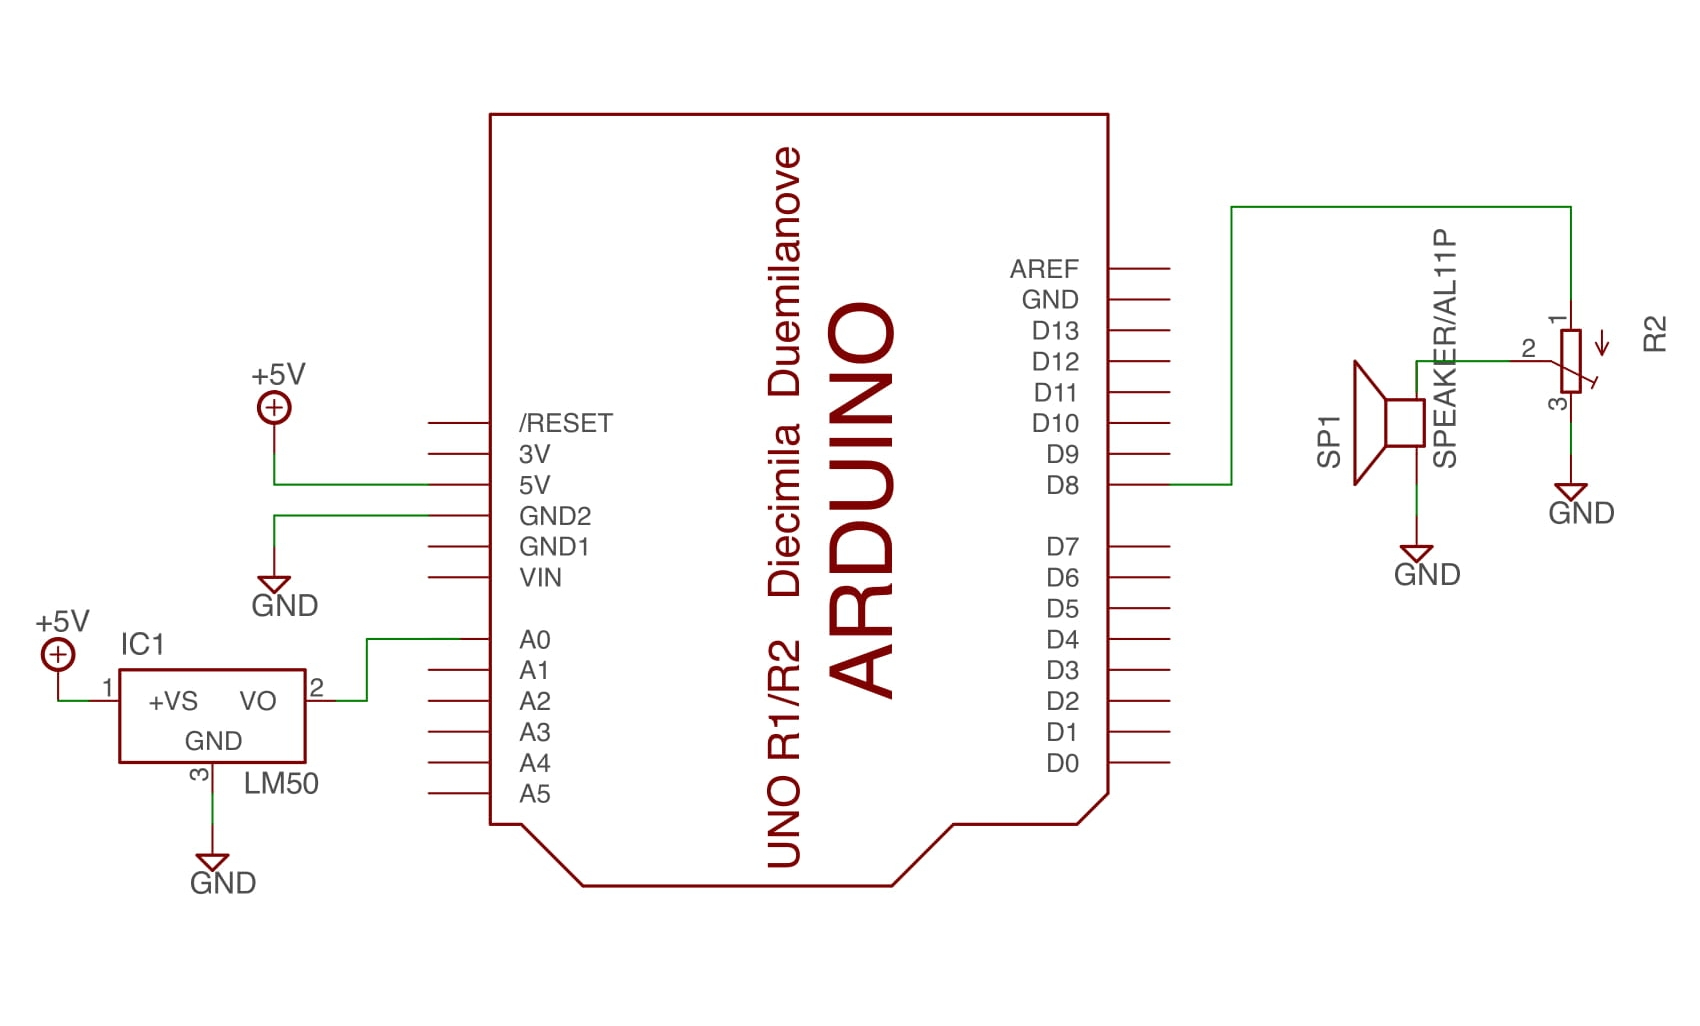 Schematic for simple circuit. Note that the temperature sensor used was a TMP36, not an LM50, but that was all that I could find that was remotely similar to the TMP36 in the Eagle library.